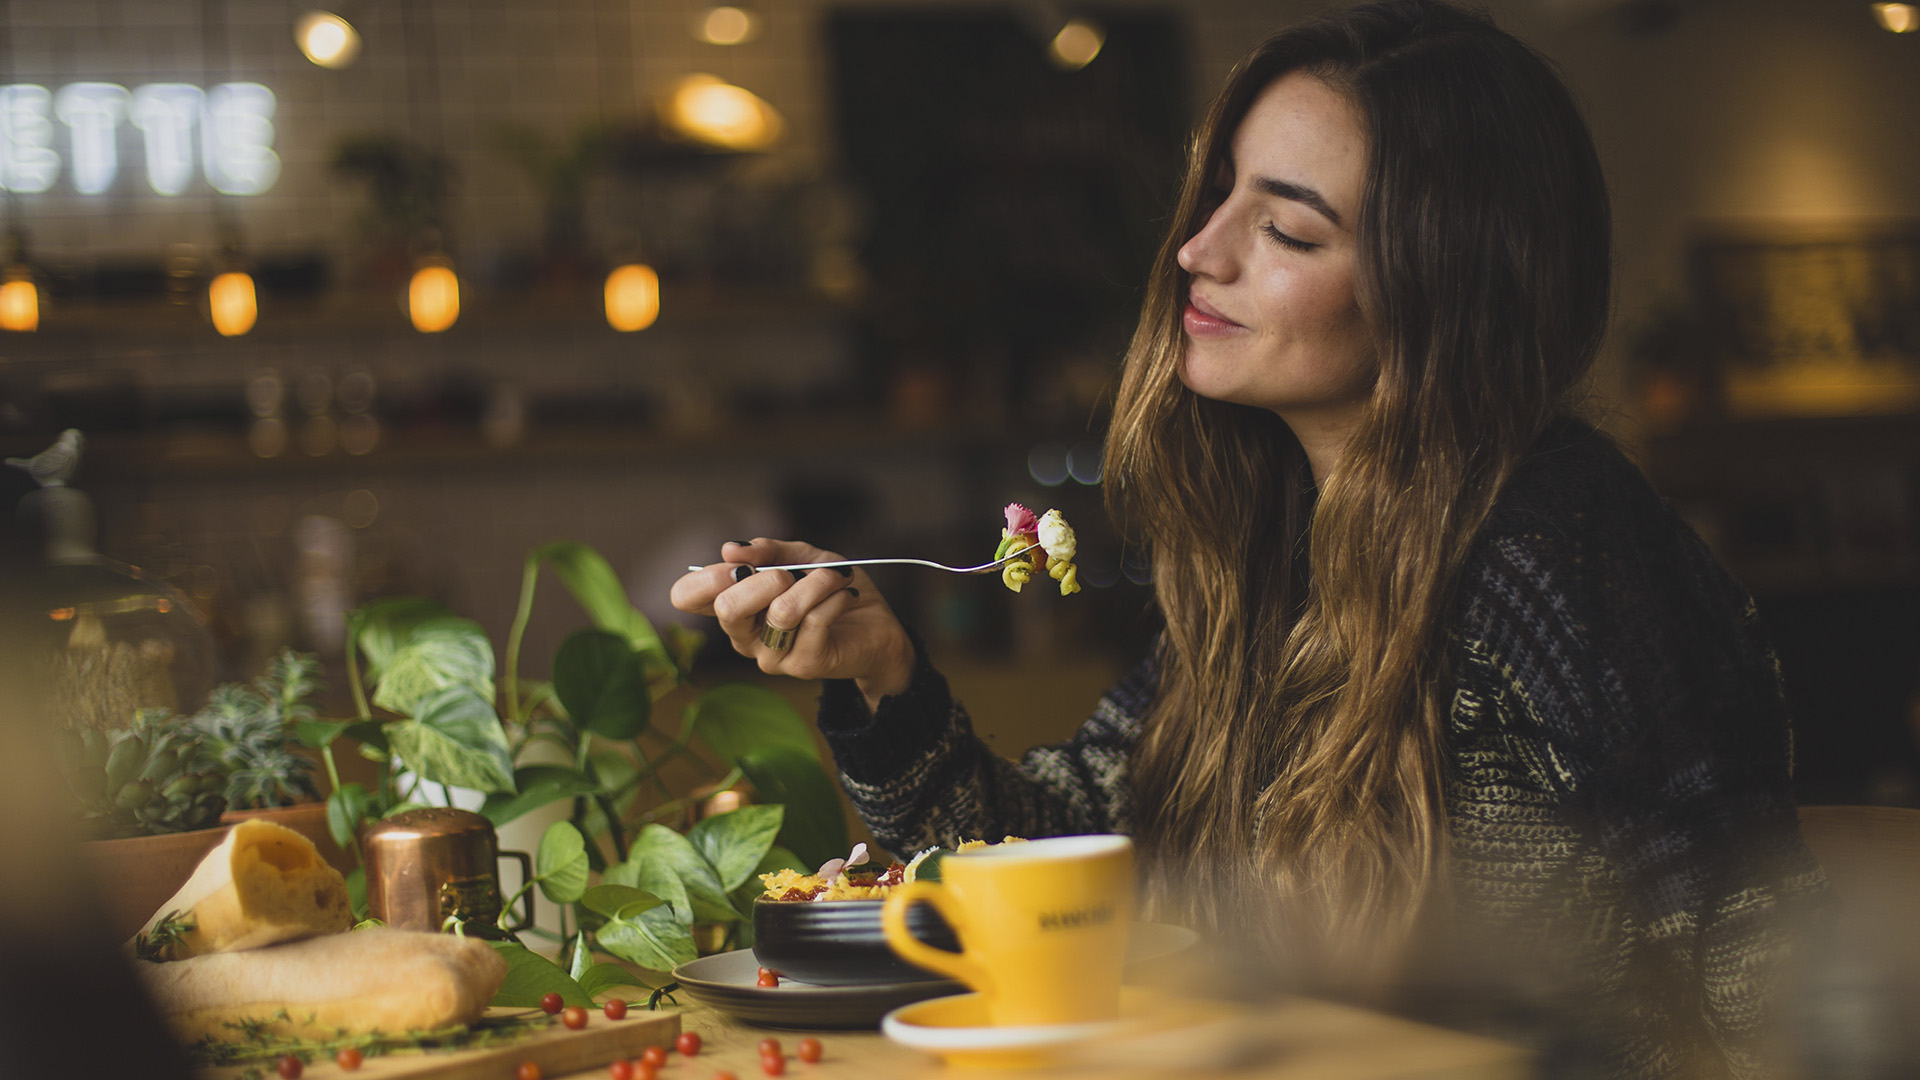 Study Examines Picky Eating In College Students